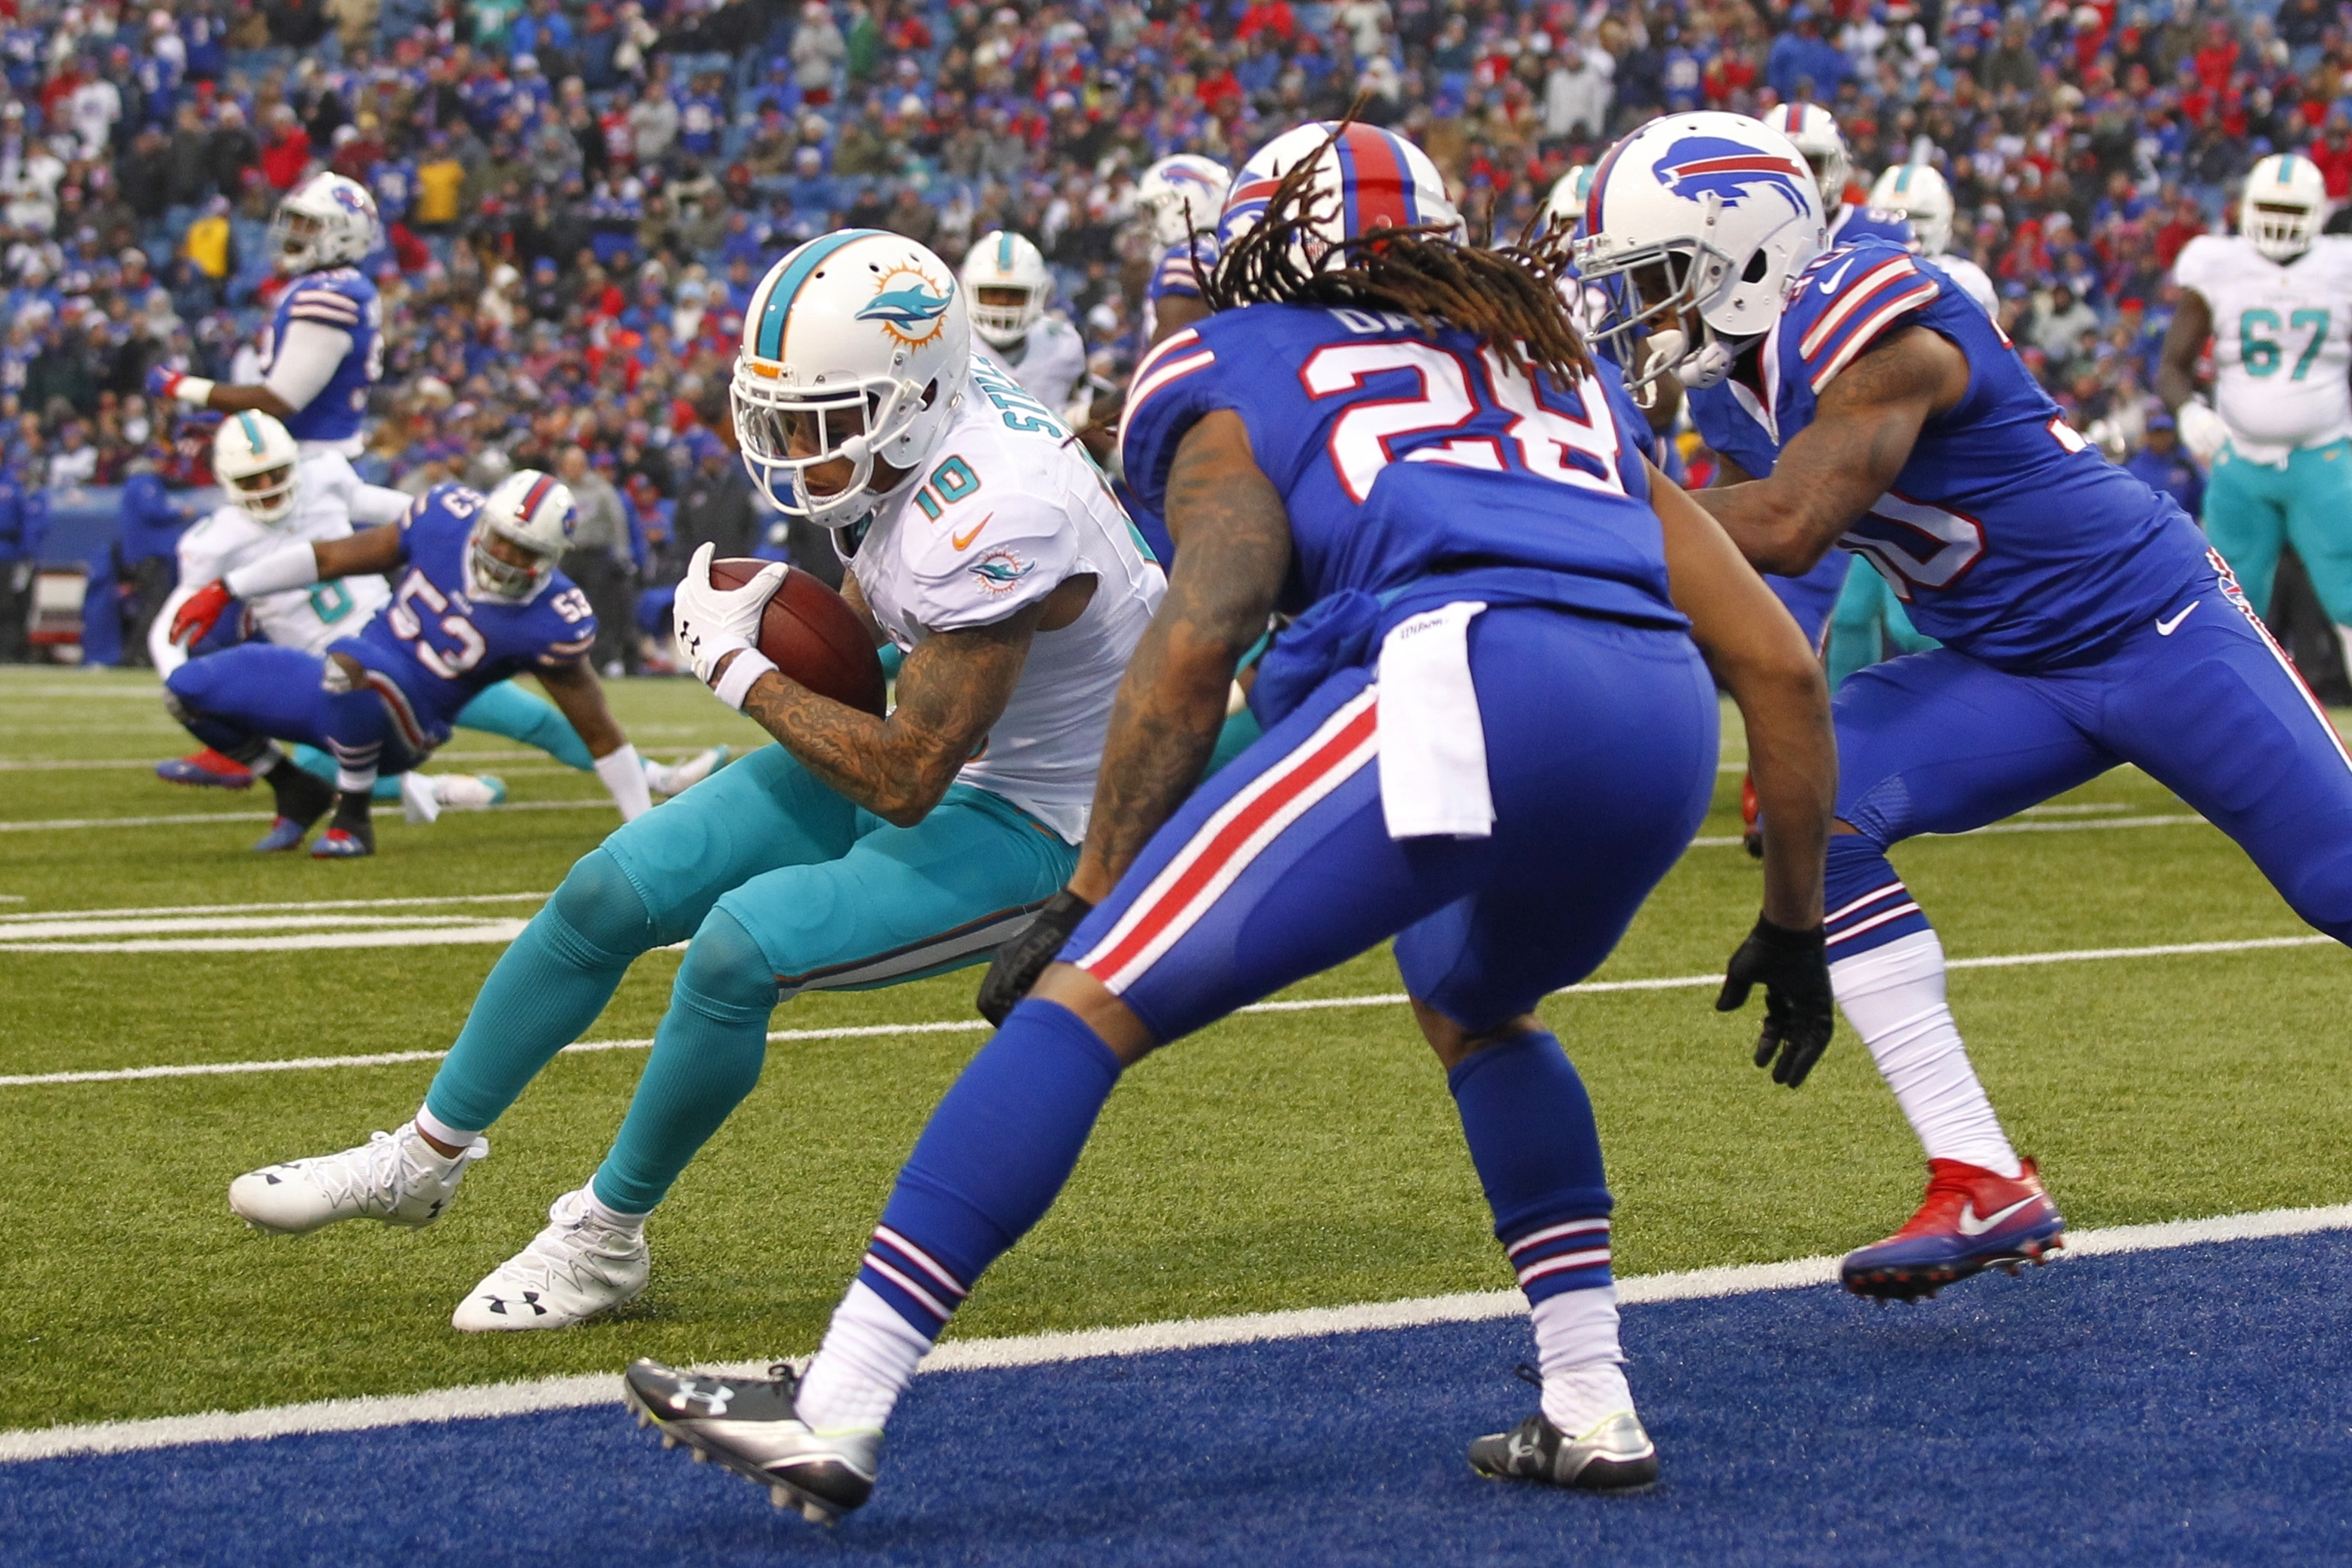 Miami Dolphins wide receiver Kenny Stills (10) scores a touchdown in front of Buffalo Bills' Ronald Darby (28) as quarterback Matt Moore (8) watches him during the second half of an NFL football game, Saturday, Dec. 24, 2016, in Orchard Park, N.Y. (AP Pho